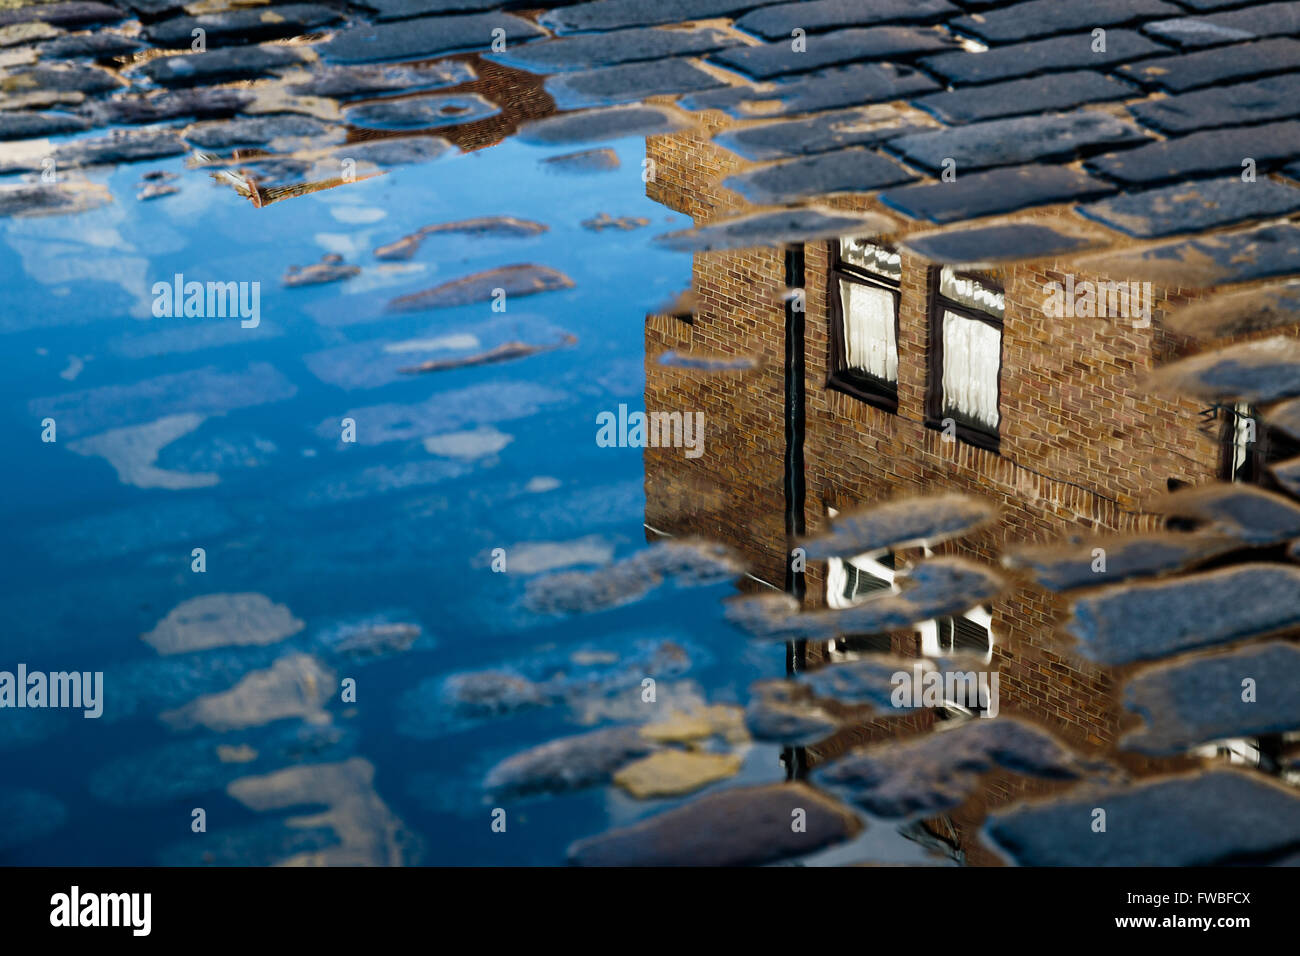 Cobblestone with reflection of house in puddle after rain - Stock Image